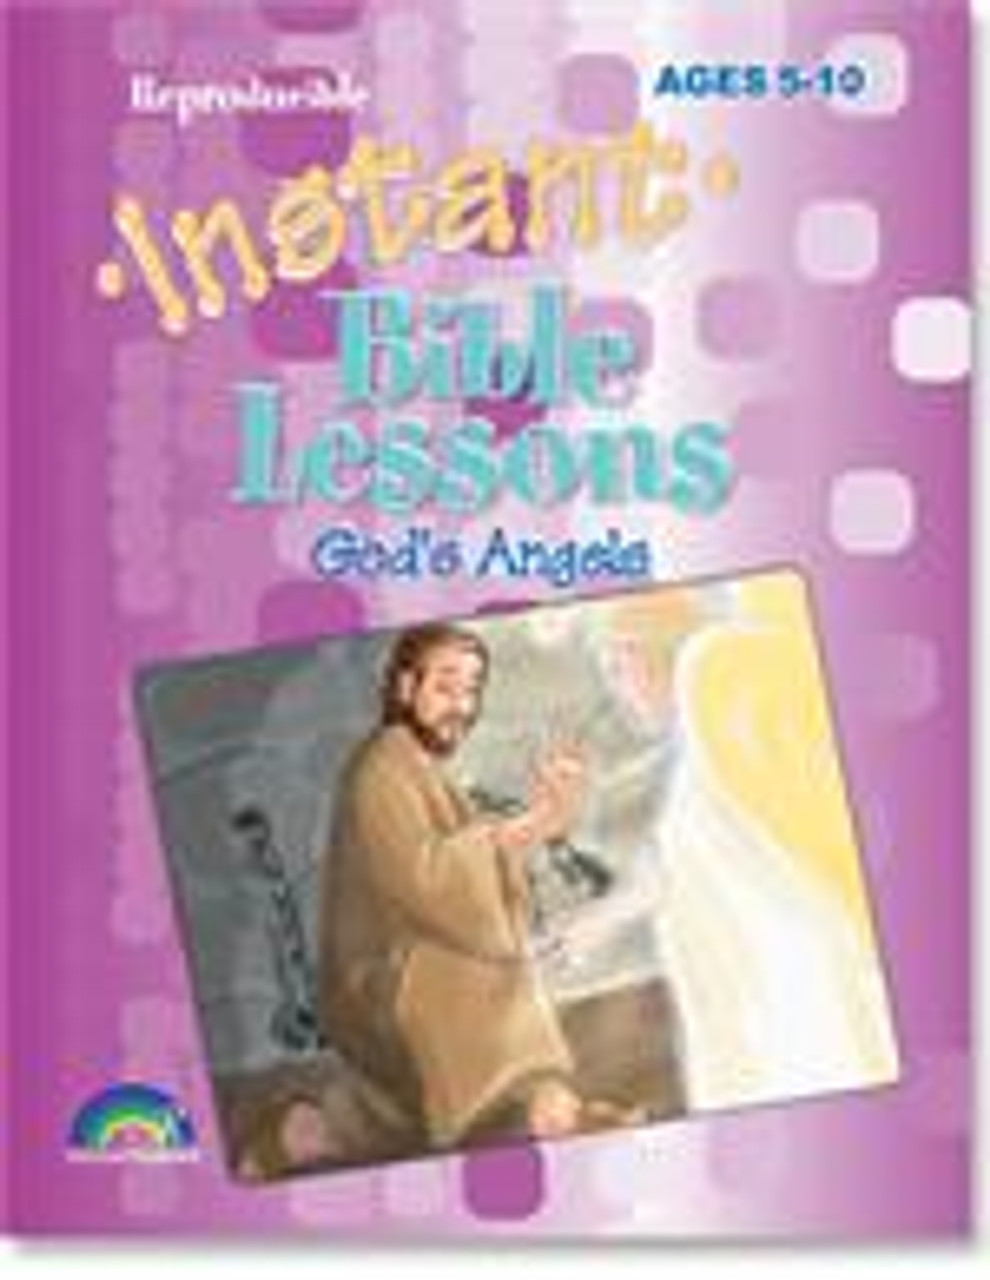 Instant Bible Lessons for Ages 5-10 God's Angels